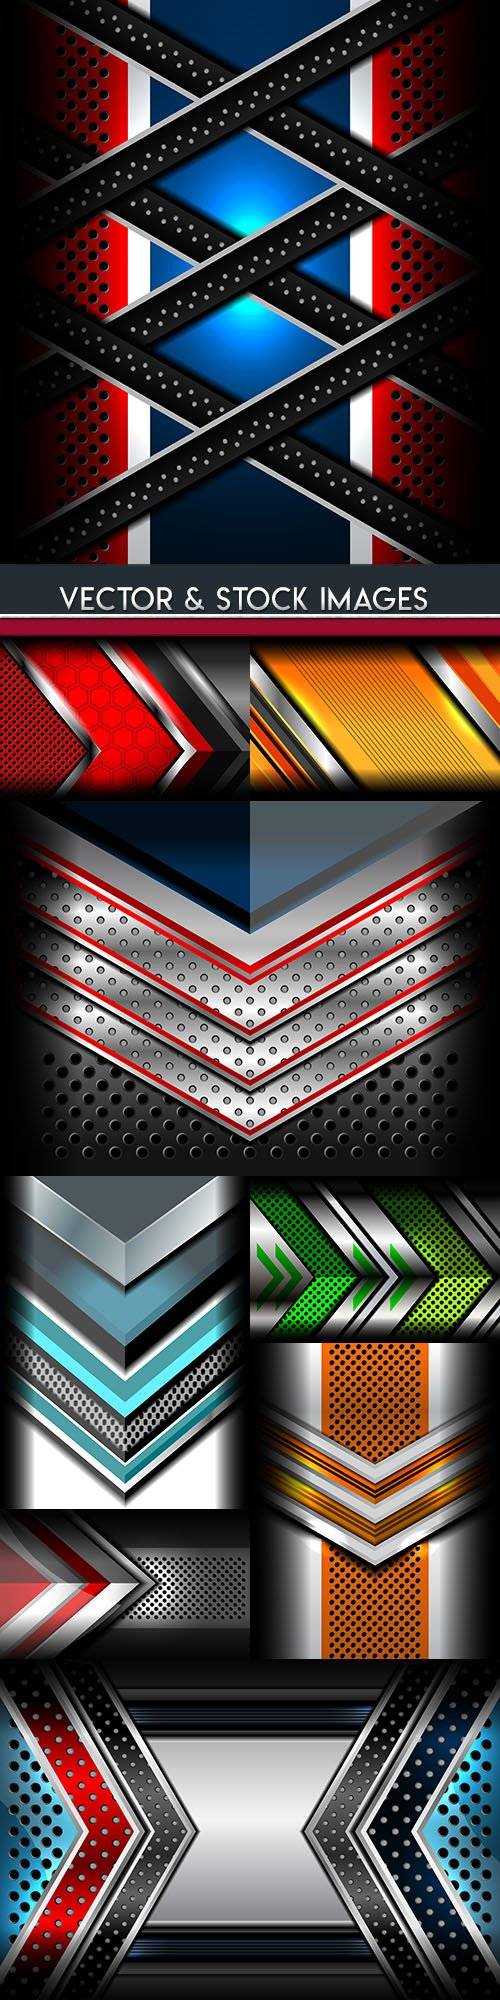 Glossy metallic geometric abstract backgrounds